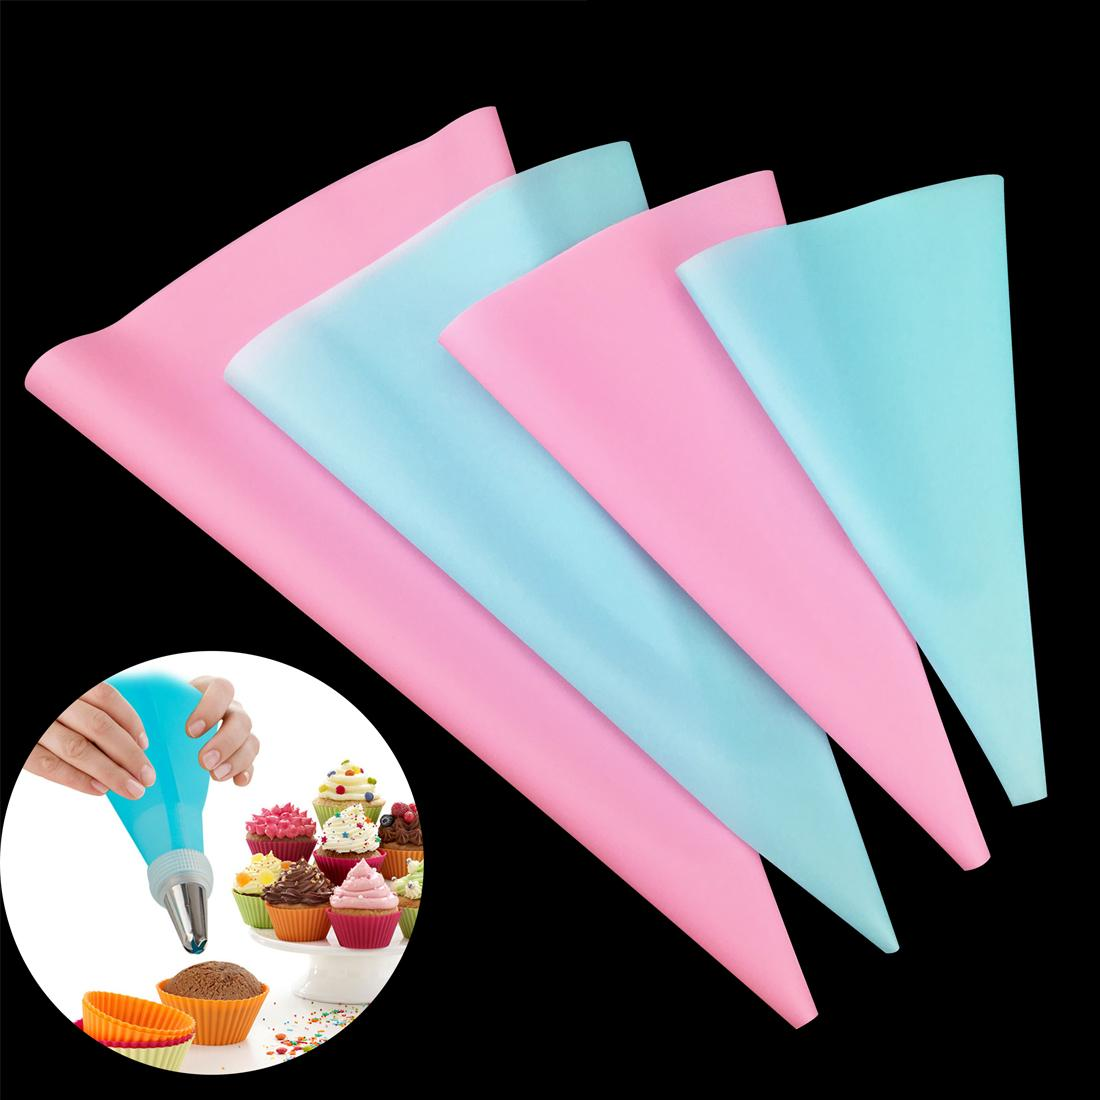 Super Confectionery Bag Silicone Icing Piping Cream Pastry Bag Nozzle DIY Cake Decorating Baking Decorating Tools